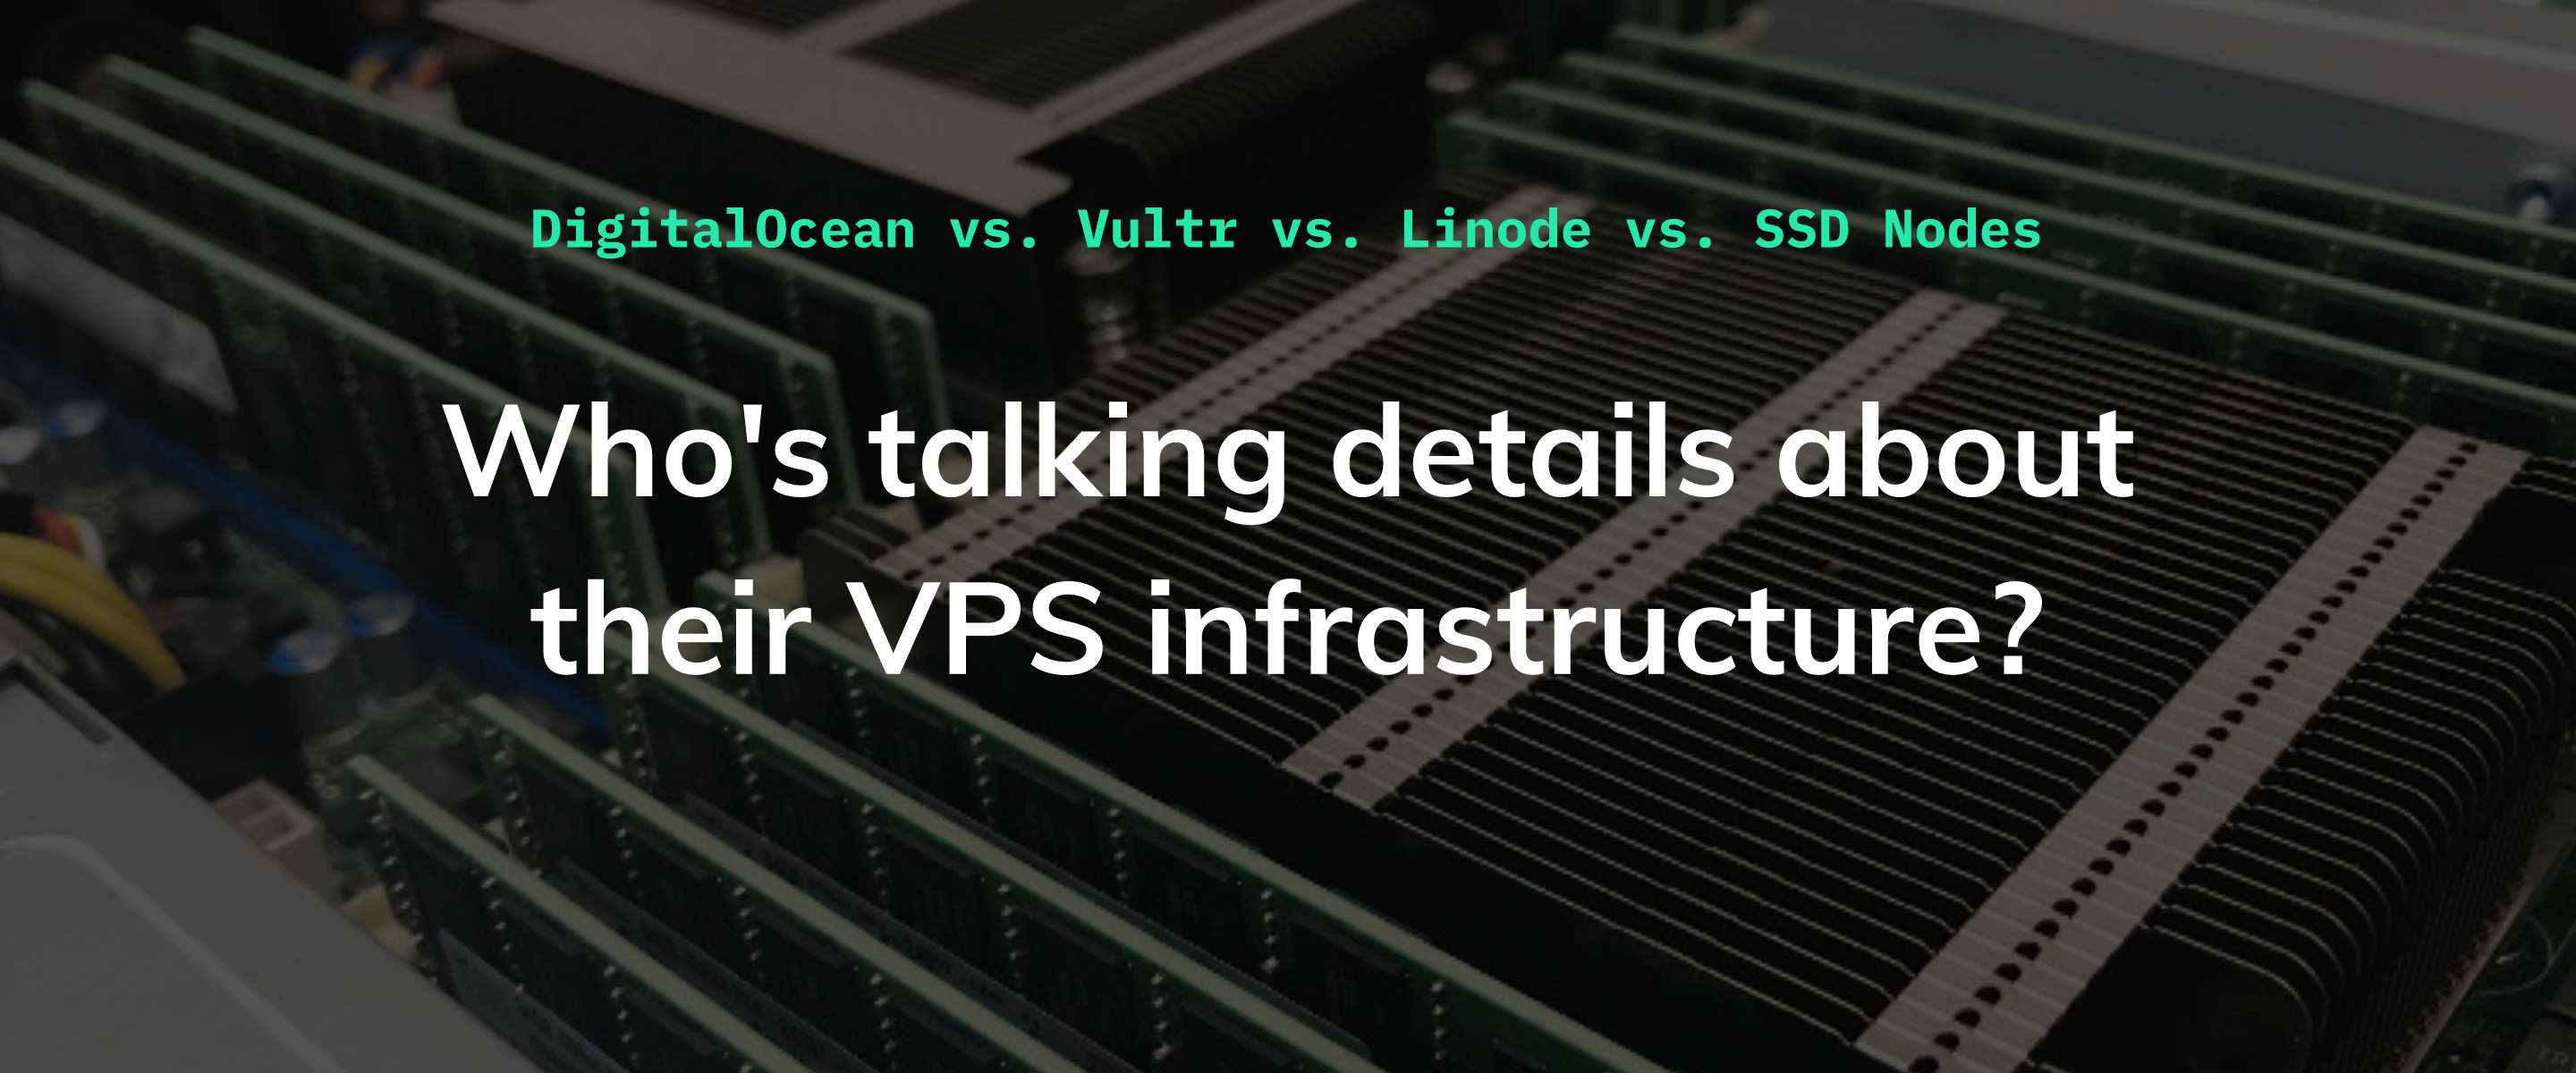 VPS infrastructure comparison: DigitalOcean vs. Vultr vs. Linode vs. SSD Nodes